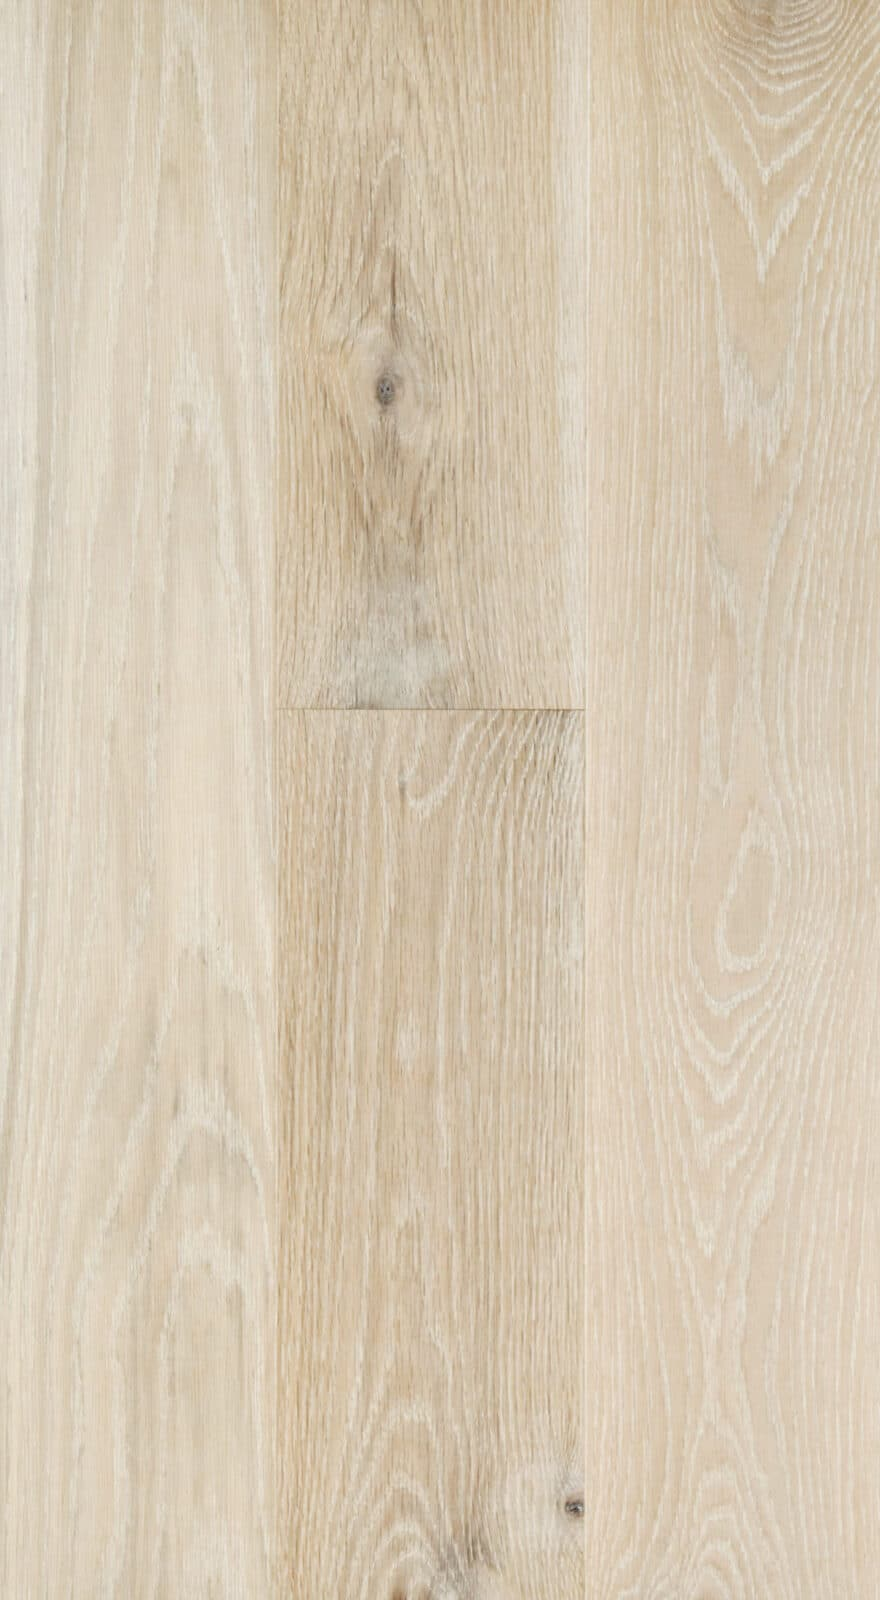 White Mountain Engineered Oak Flooring Lightly Brushed Matt Lacquered